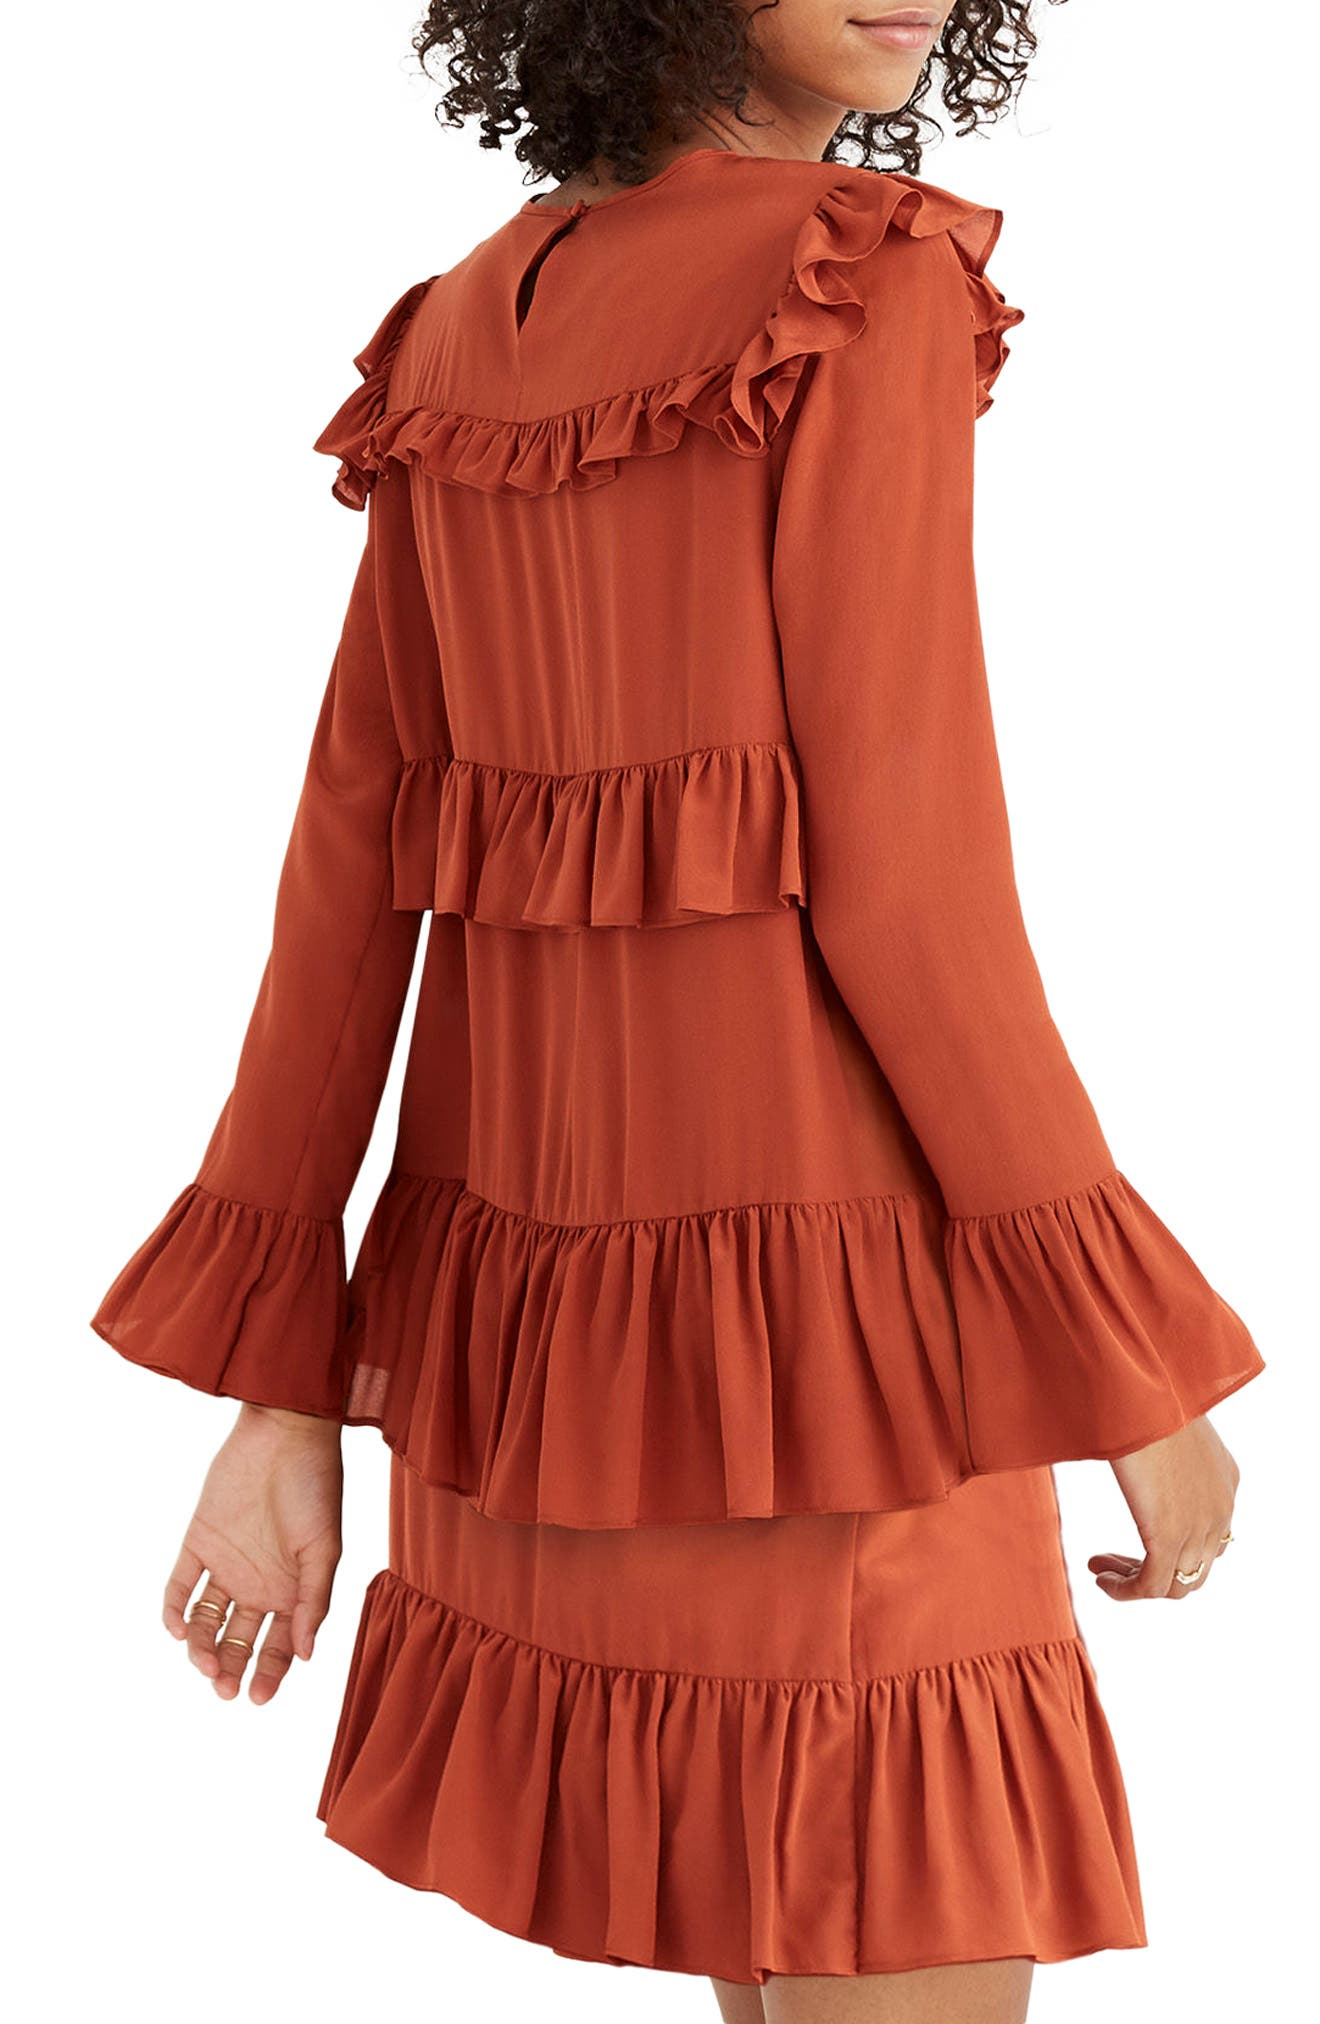 Waterlily Ruffle Dress,                             Alternate thumbnail 2, color,                             Burnished Rust